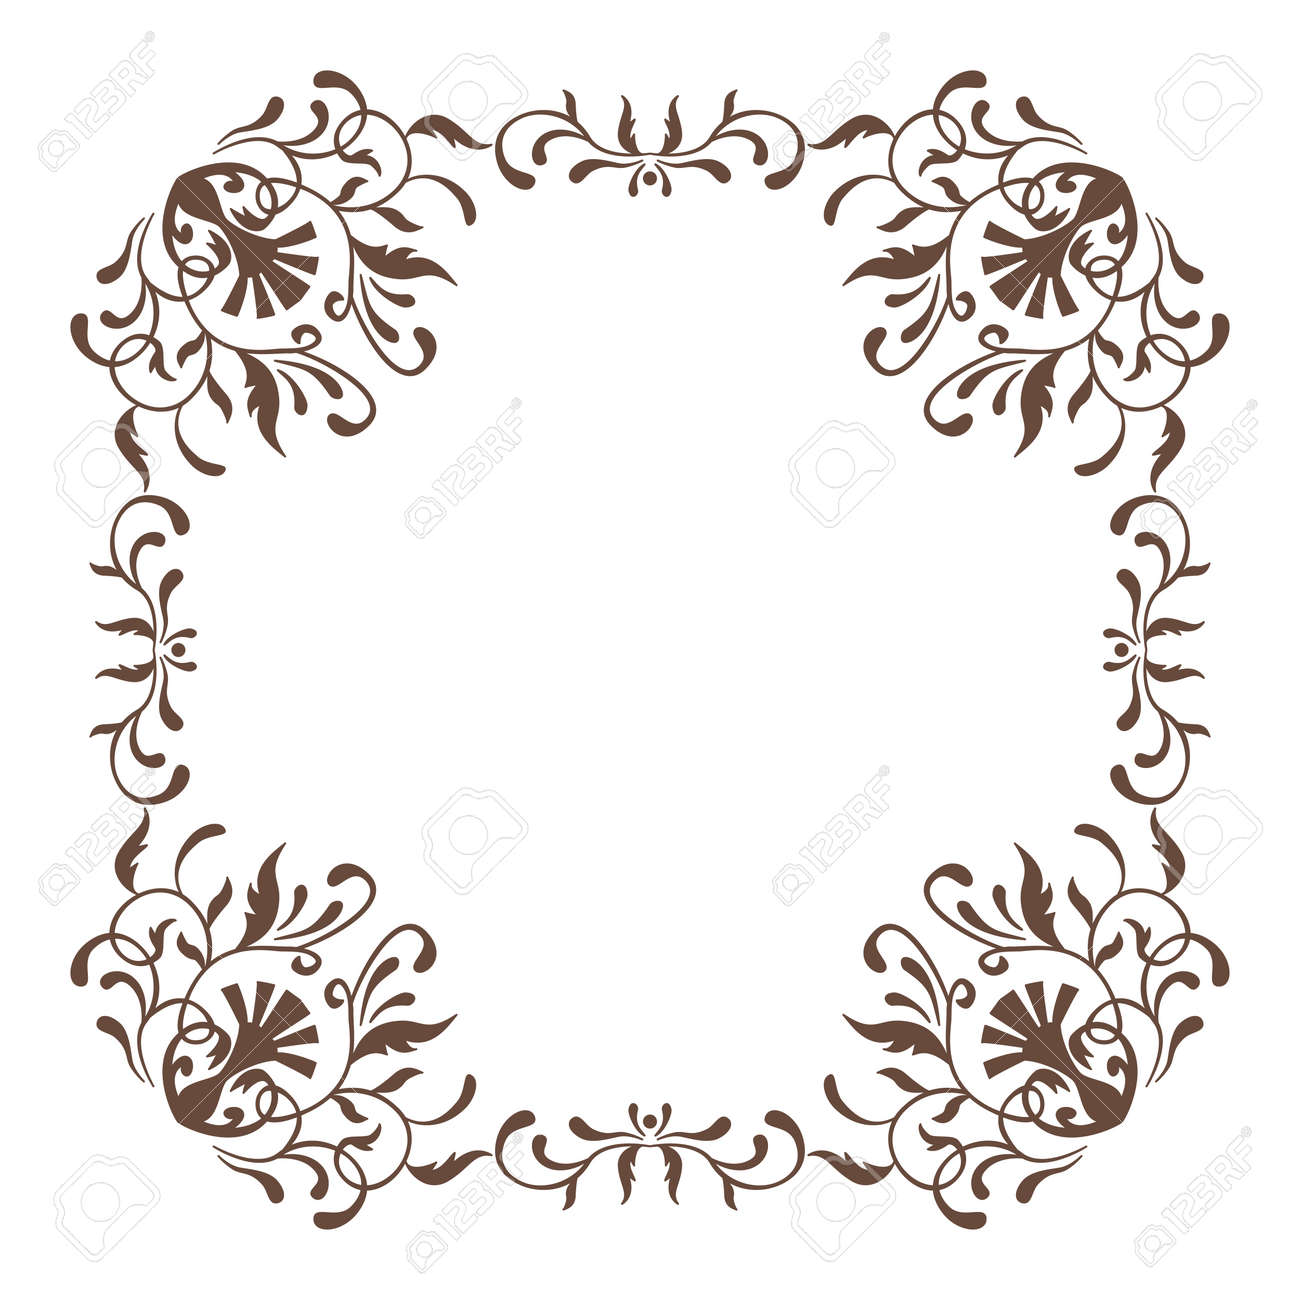 4c165e5718f9 Decorative Square Frame Vintage Style For Greeting